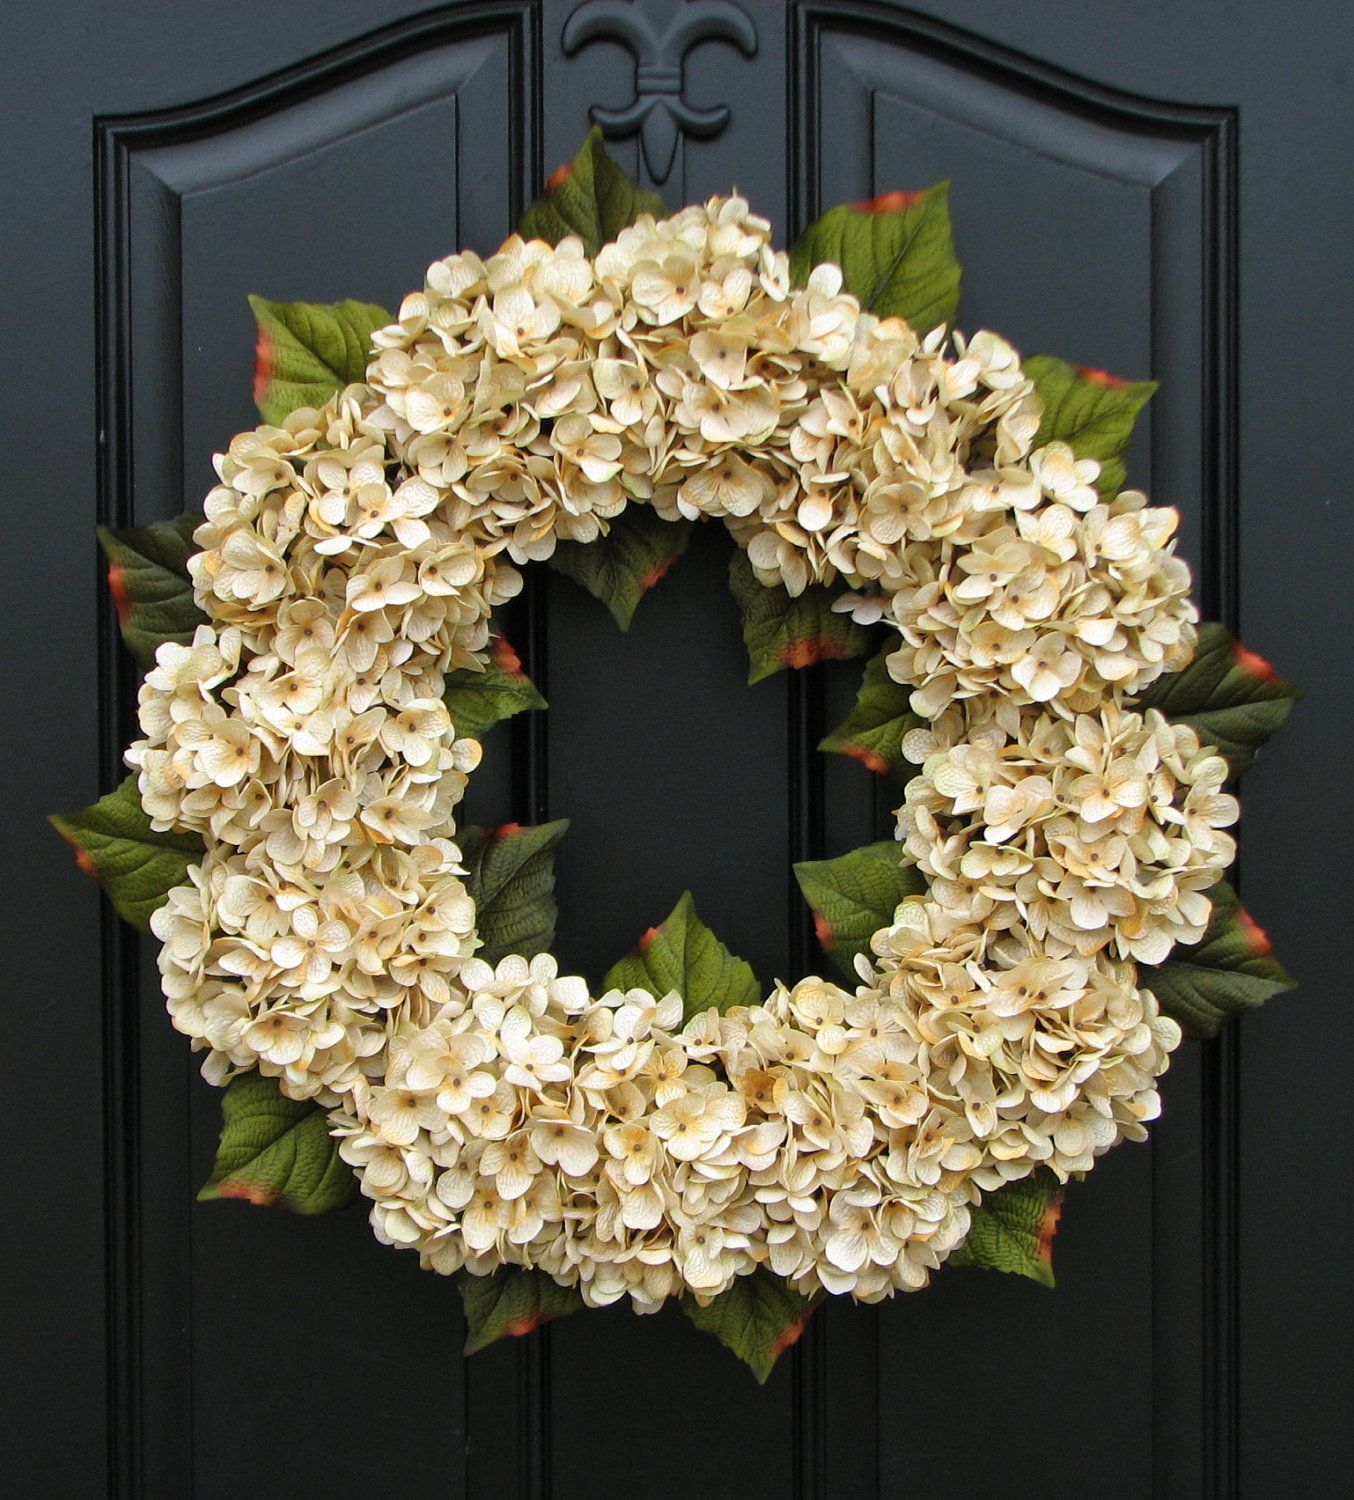 Modern Wreaths For Front Door Wedding Decor Champagne Wreath Holidays